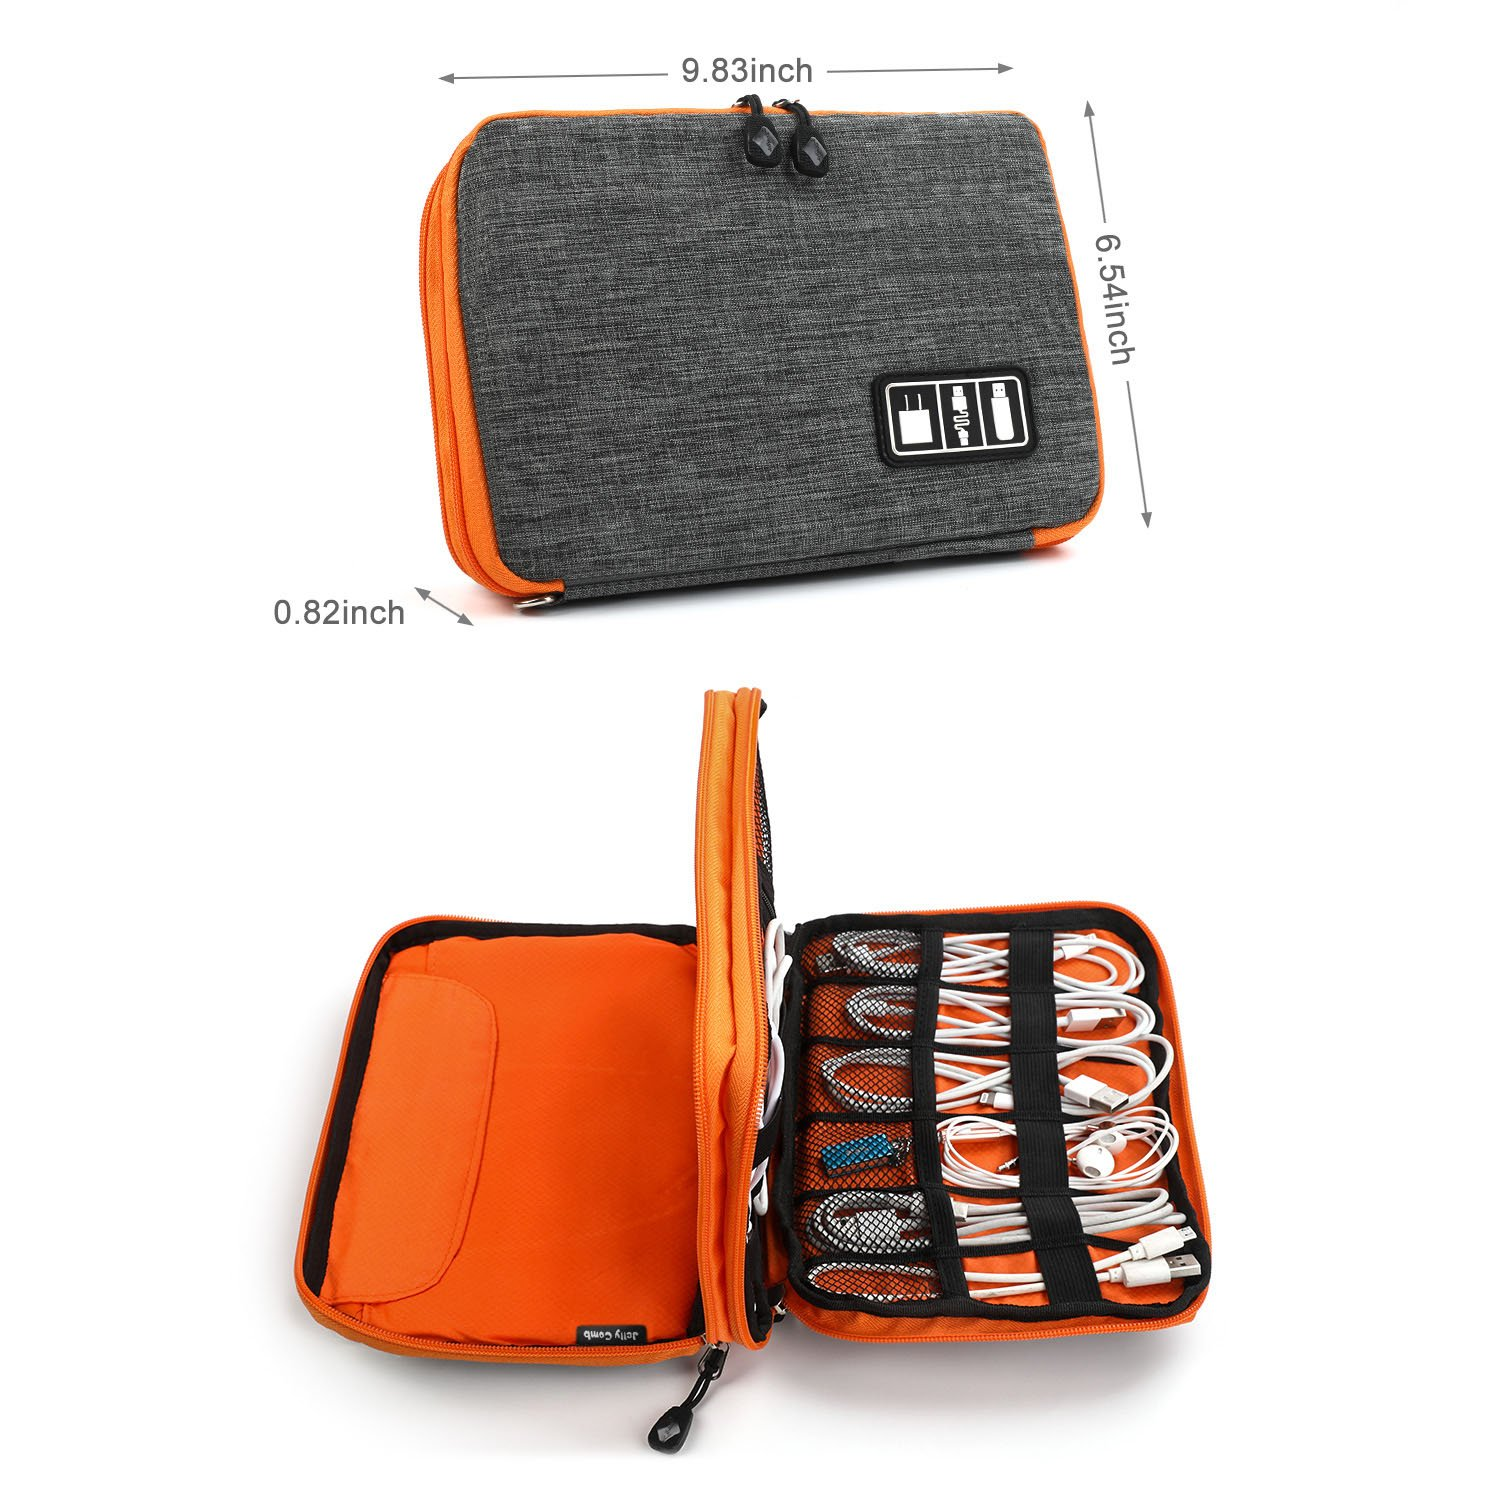 All Black Power Bank Electronics Organizer iPad (Up to 11 and More-Large Jelly Comb Electronic Accessories Cable Organizer Bag Waterproof Travel Cable Storage Bag for Charging Cable